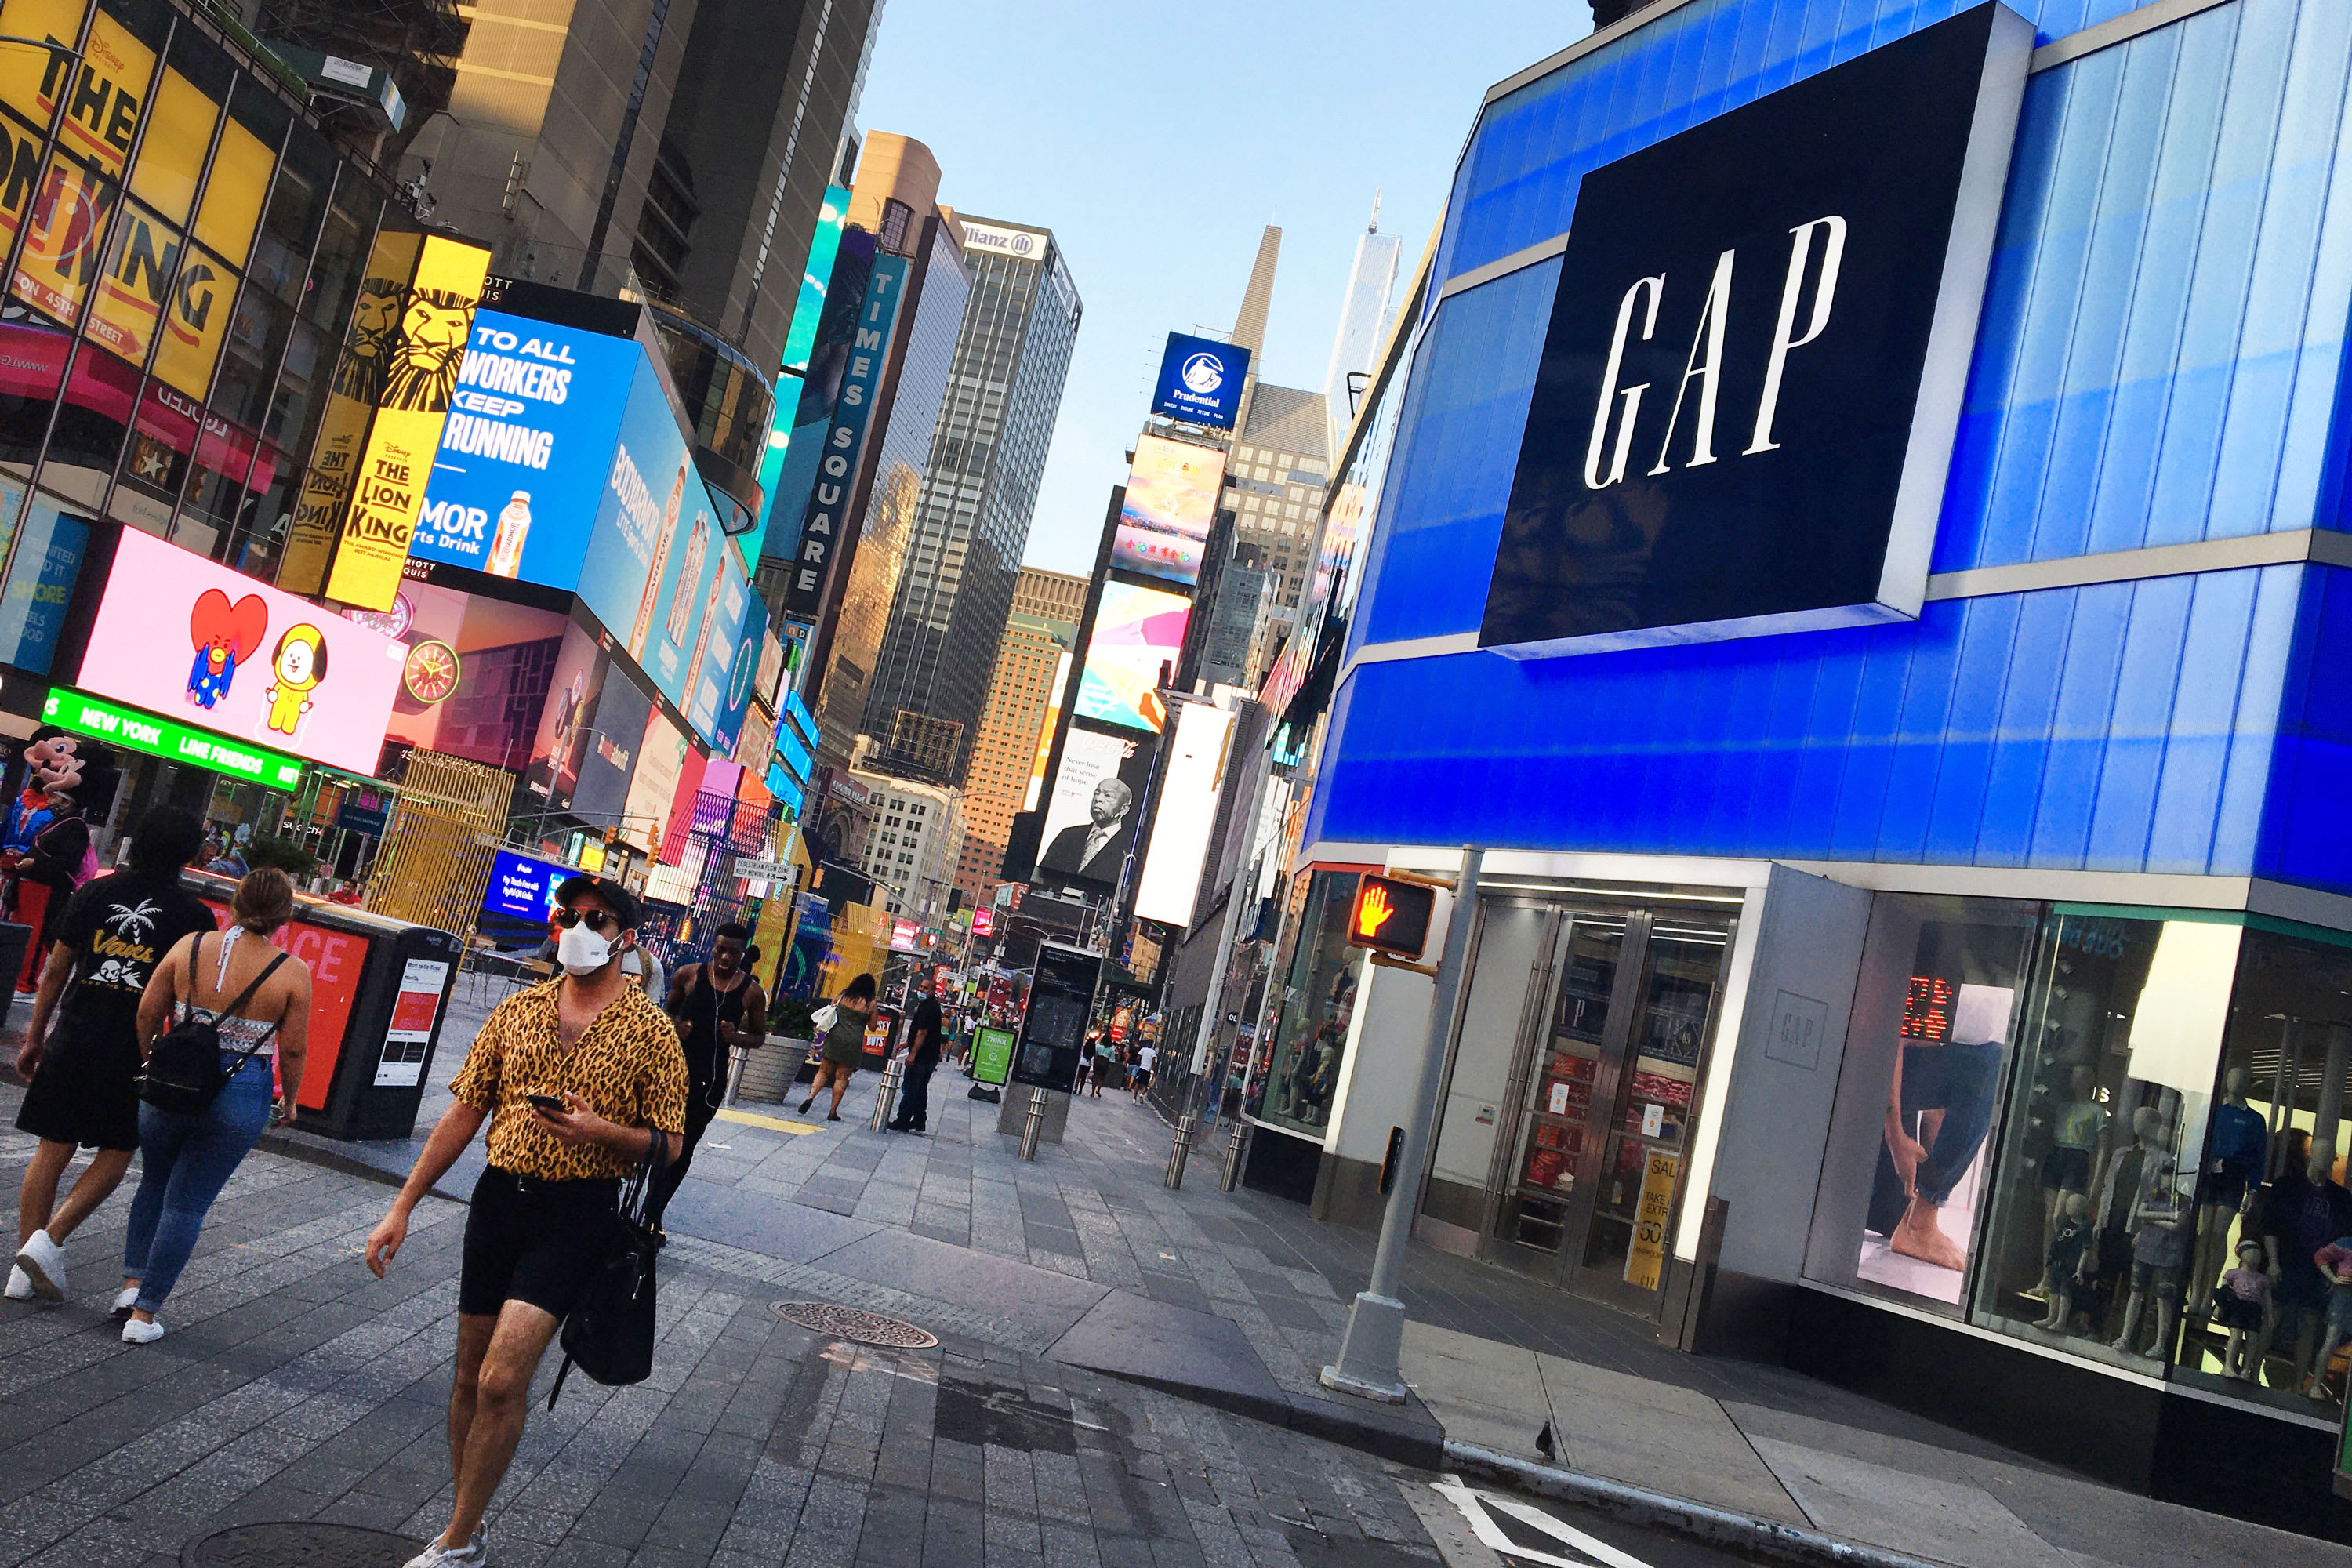 Gap shares up 11% store closure plans, shifts focus e-commerce